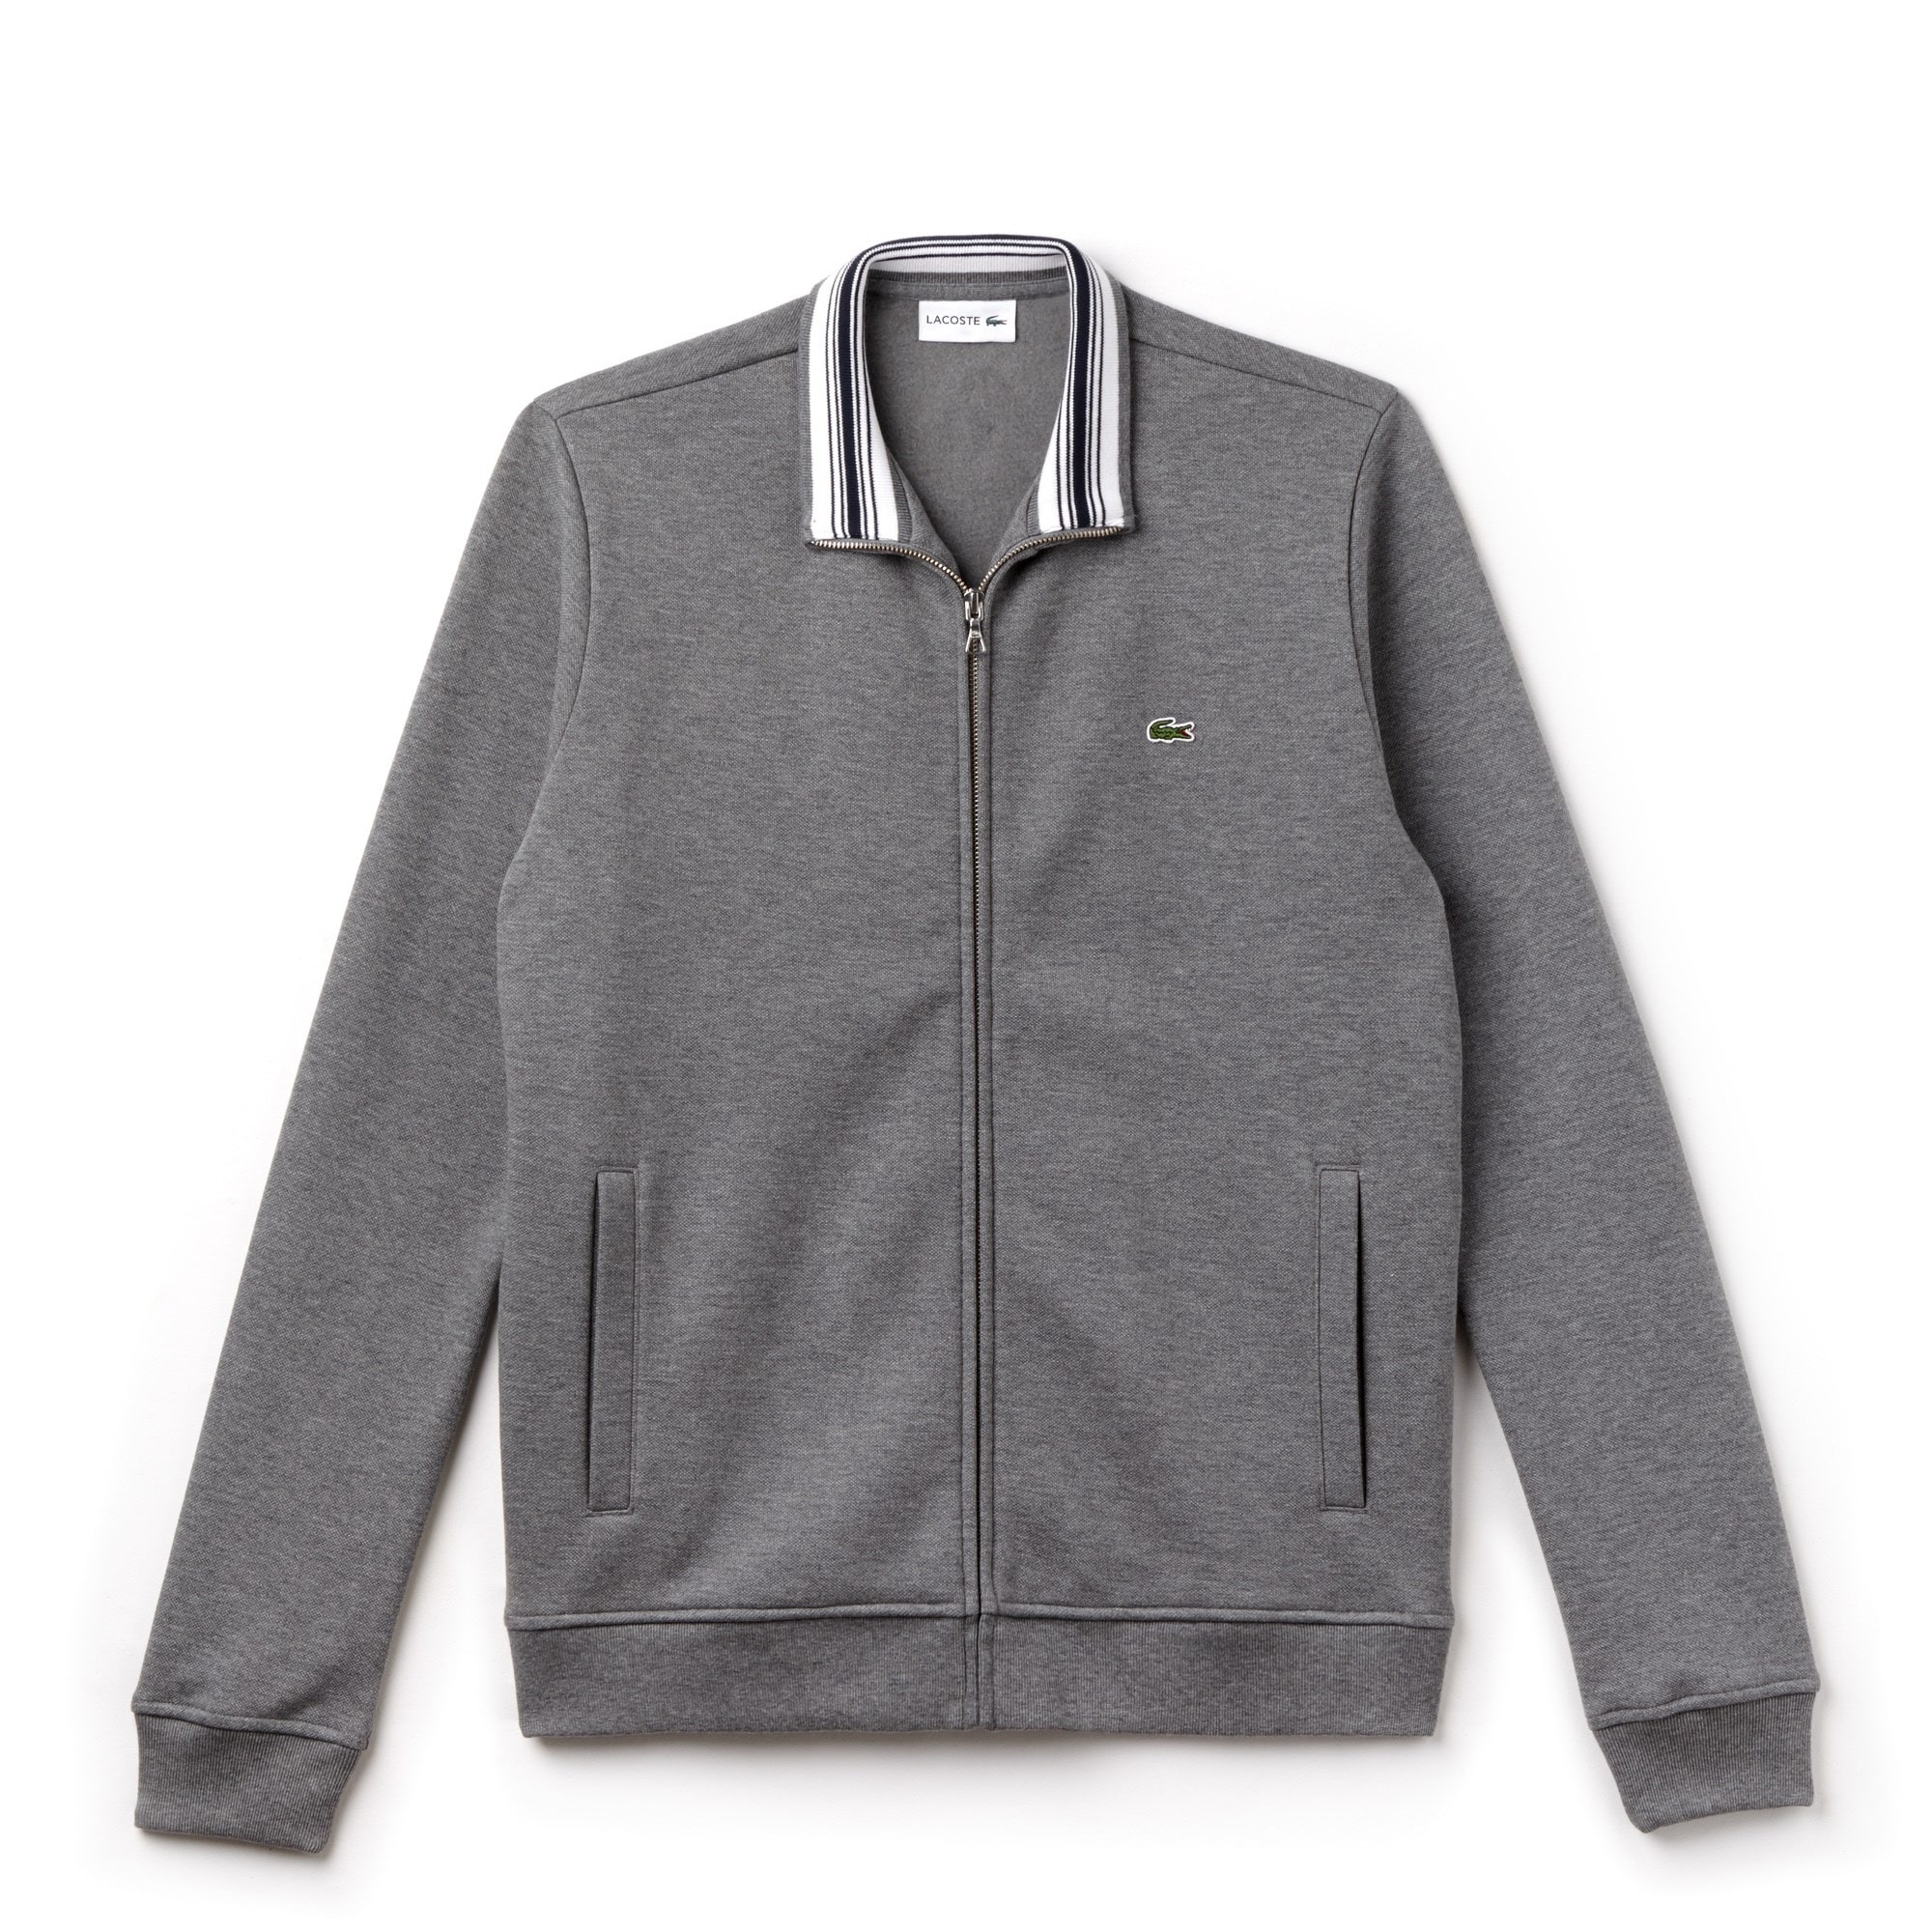 Men's Zip Stand-Up Collar Fleece Sweatshirt